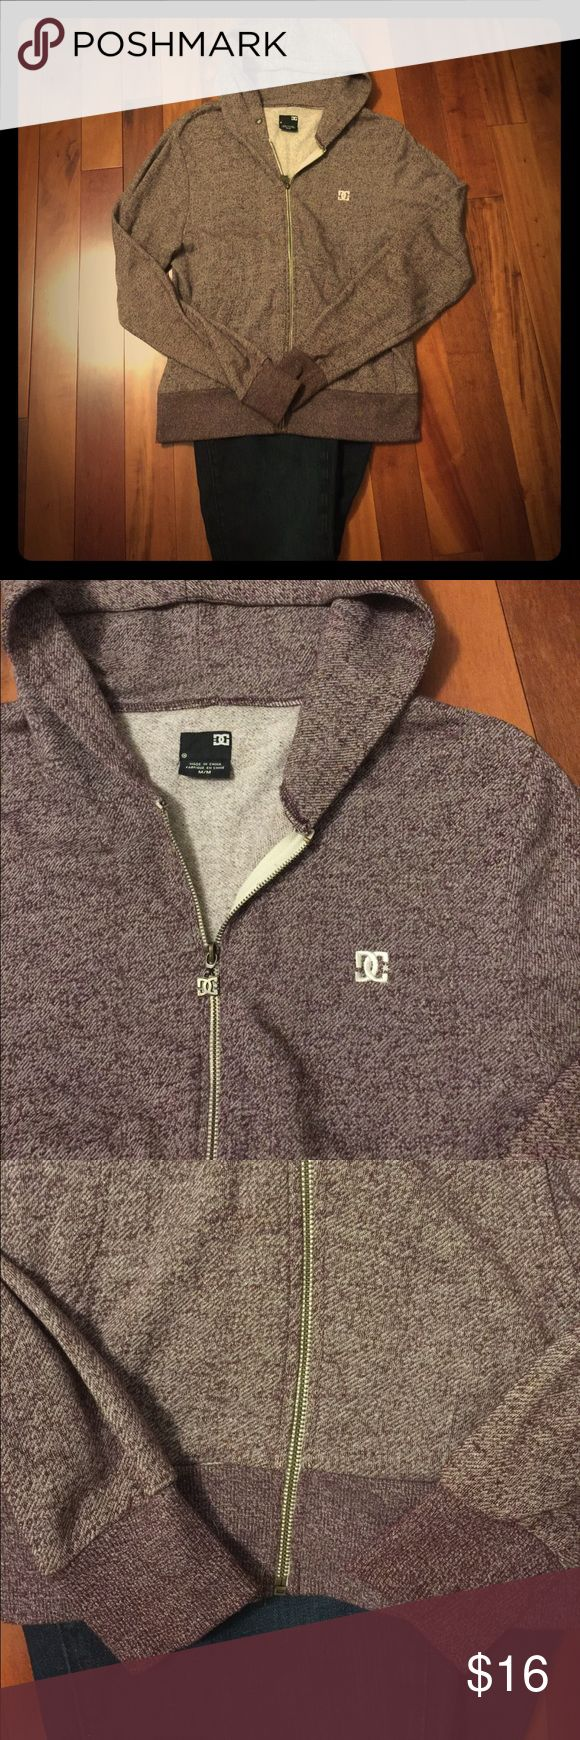 DC Skate Zip Hoodie Heathered Maroon Beautiful Maroon color DC Skate Full Zip Hooded Sweatshirt!  Perfect color for fall!  Excellent used condition, Adult Size M, very loose fit.  Get this cozy piece for yourself today! DC Tops Sweatshirts & Hoodies